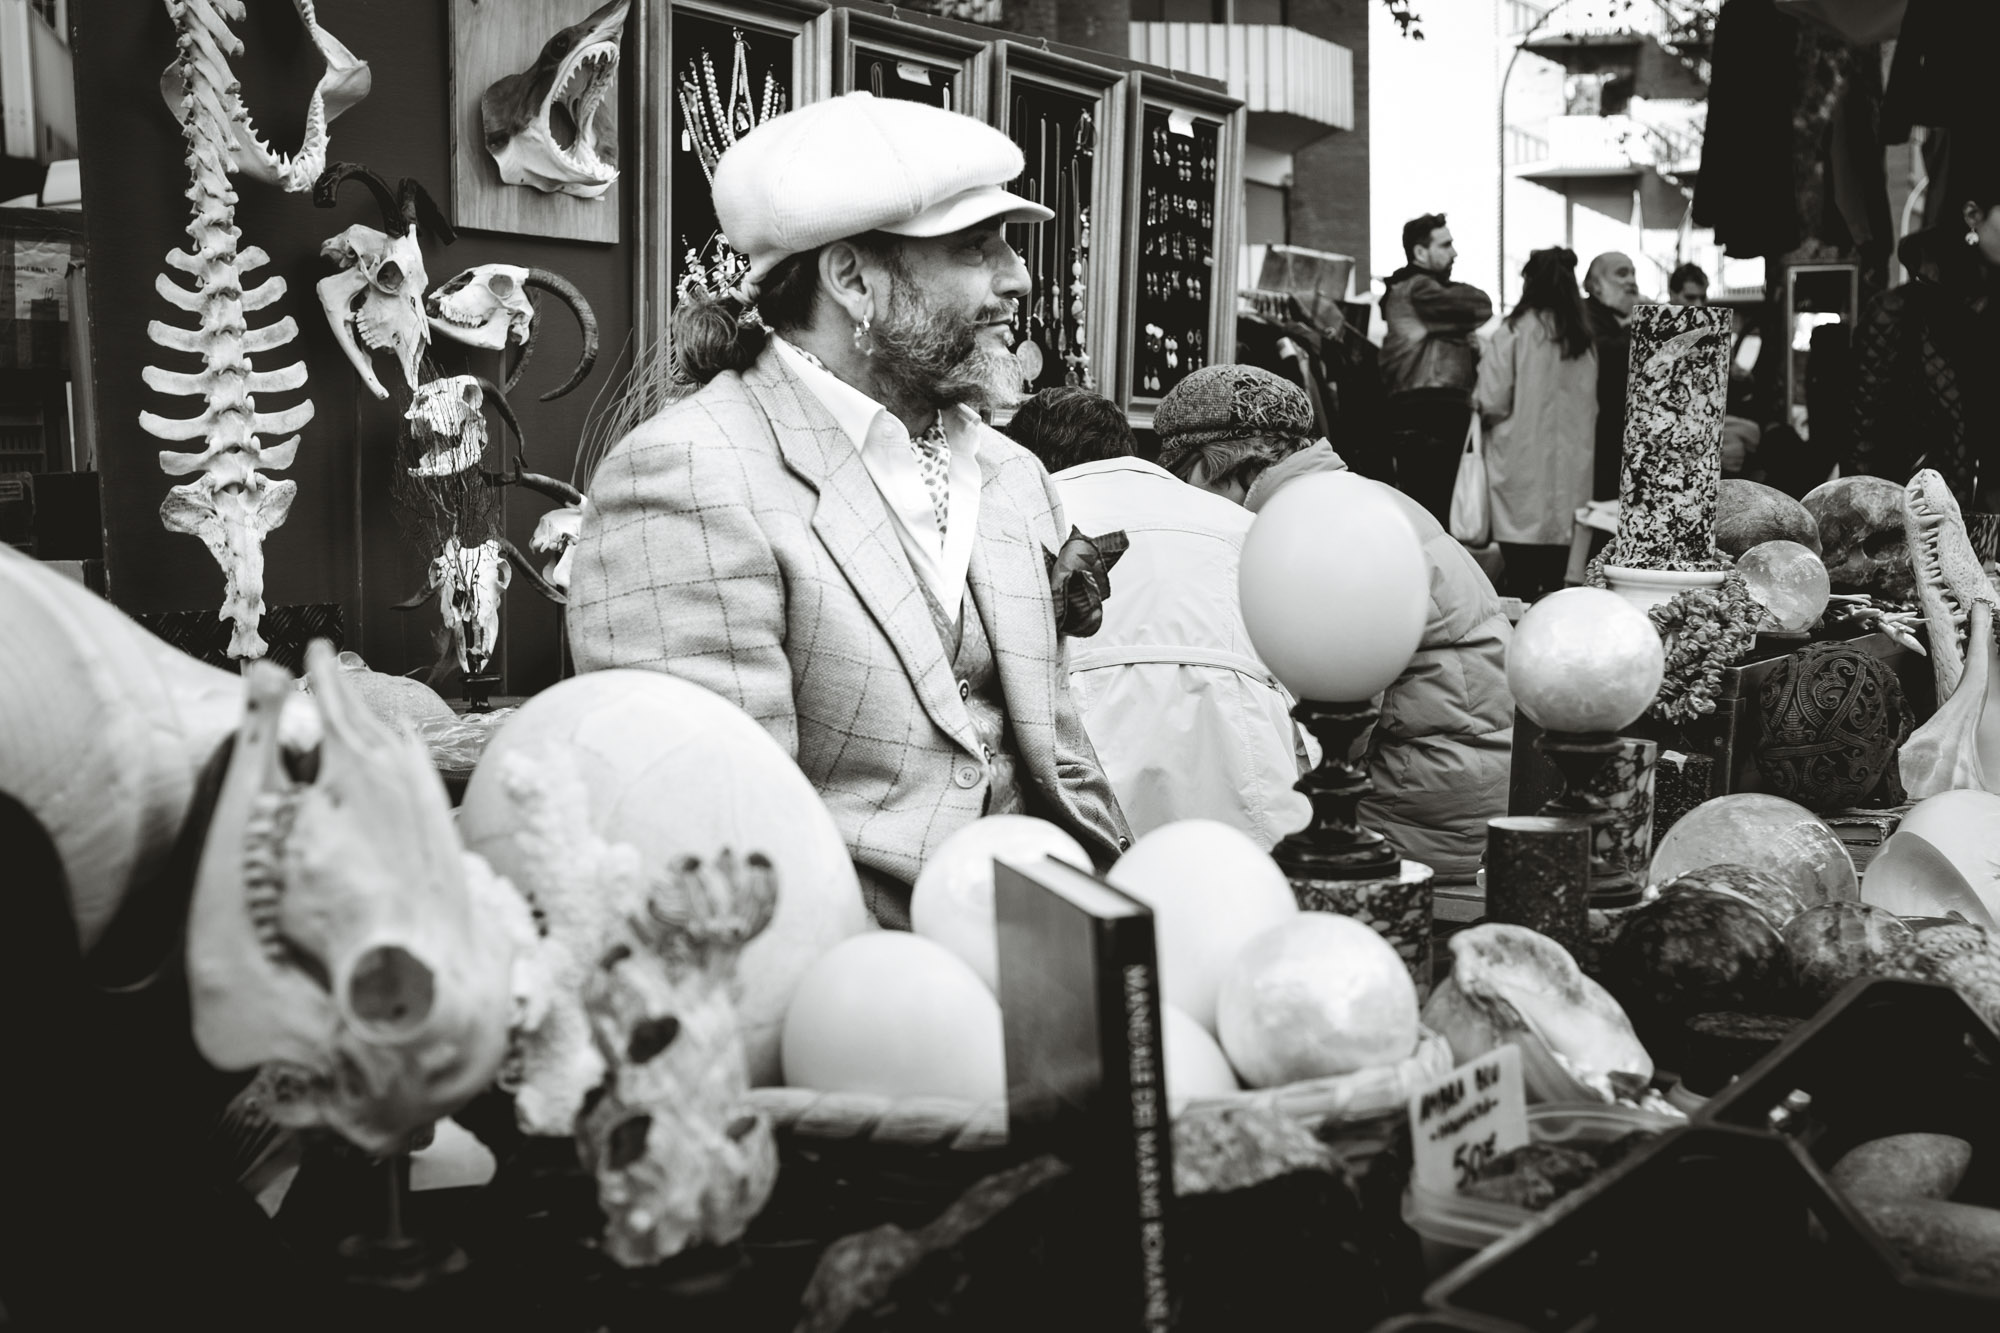 Man selling skulls in Porta Portese Rome